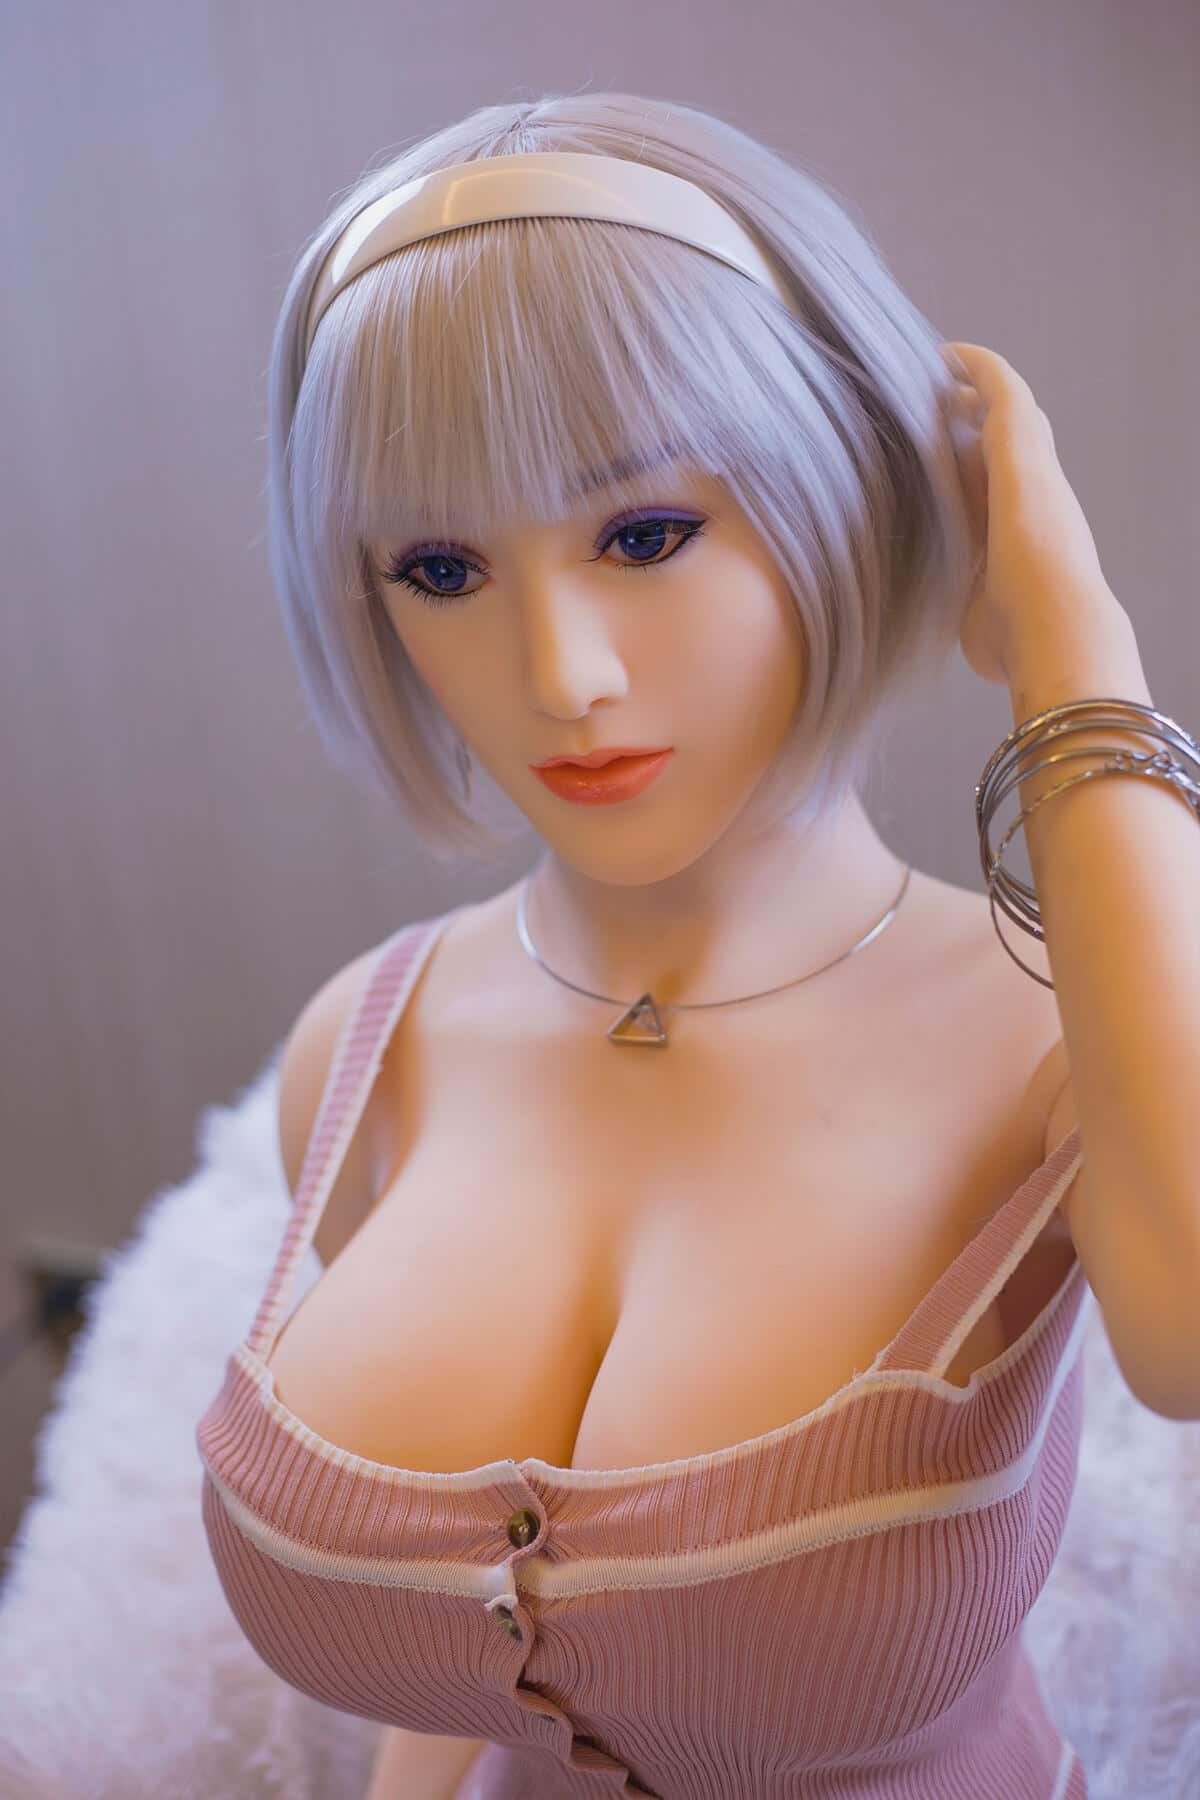 Sex doll 170 JY 1 - Sex doll en france Adopte une doll